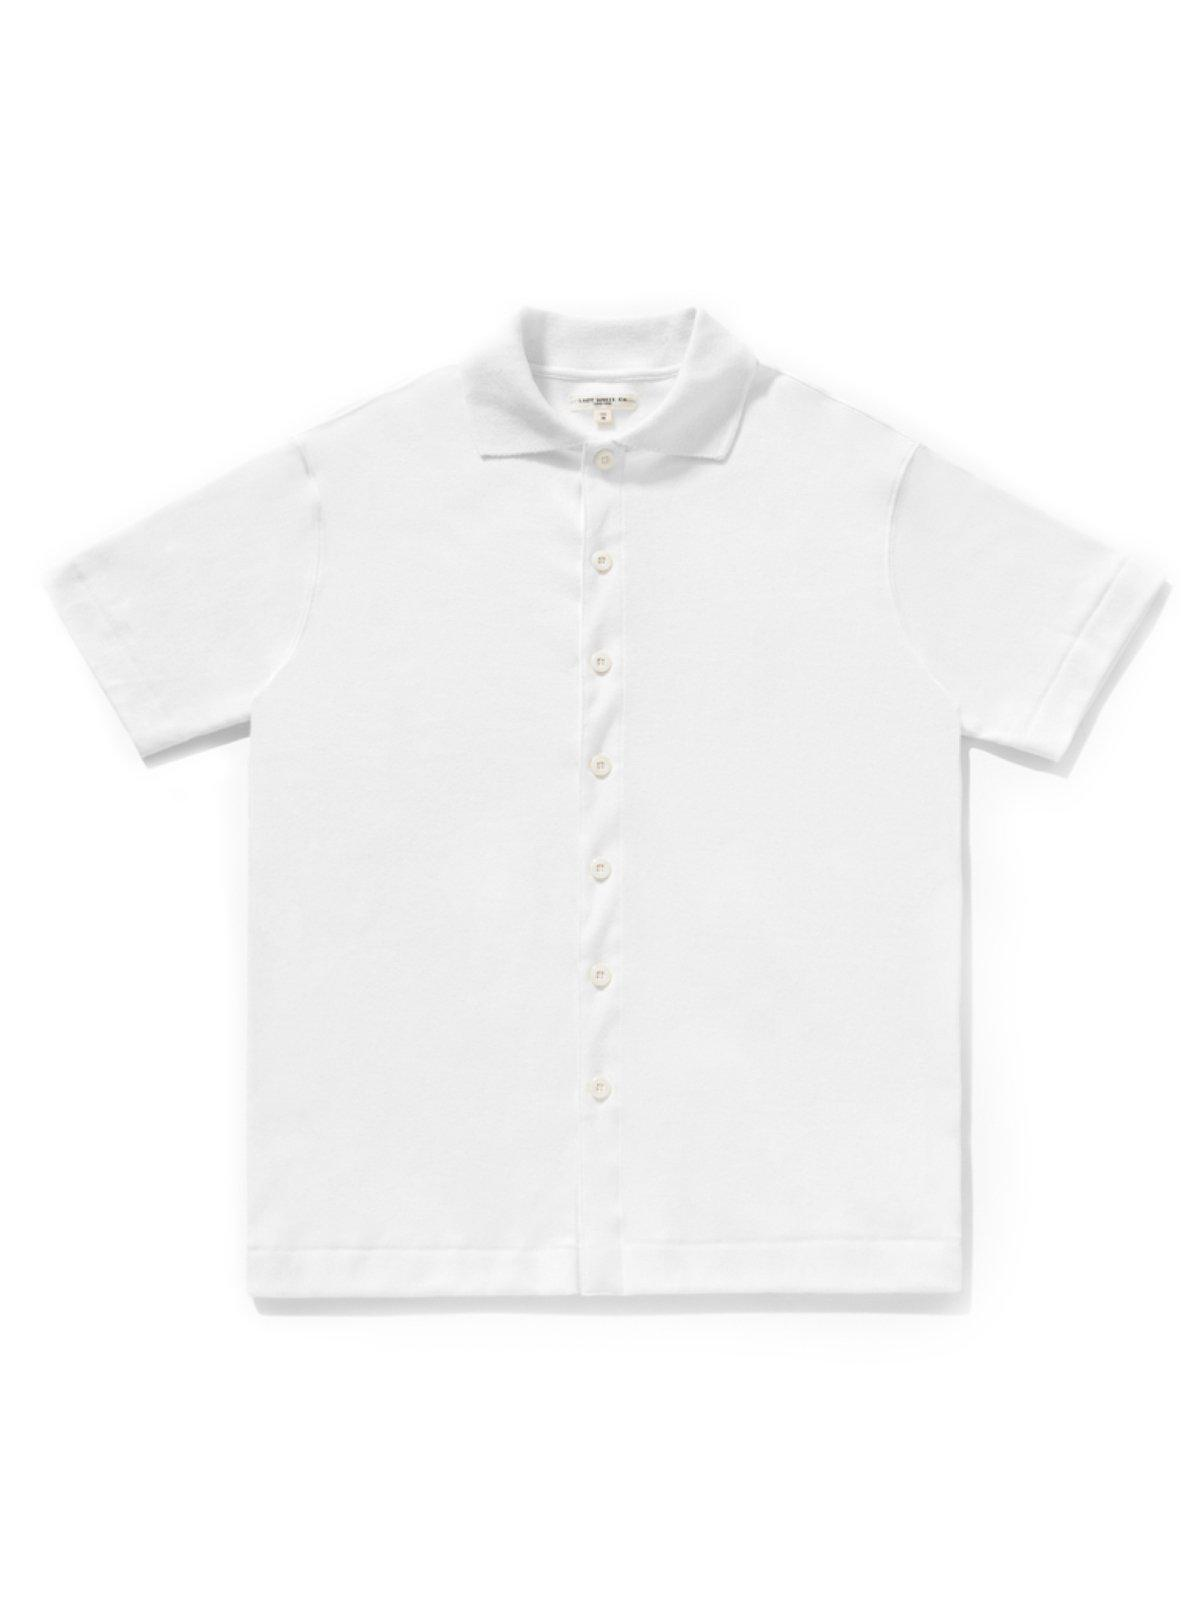 Lady White Co. Placket Polo White - MORE by Morello Indonesia